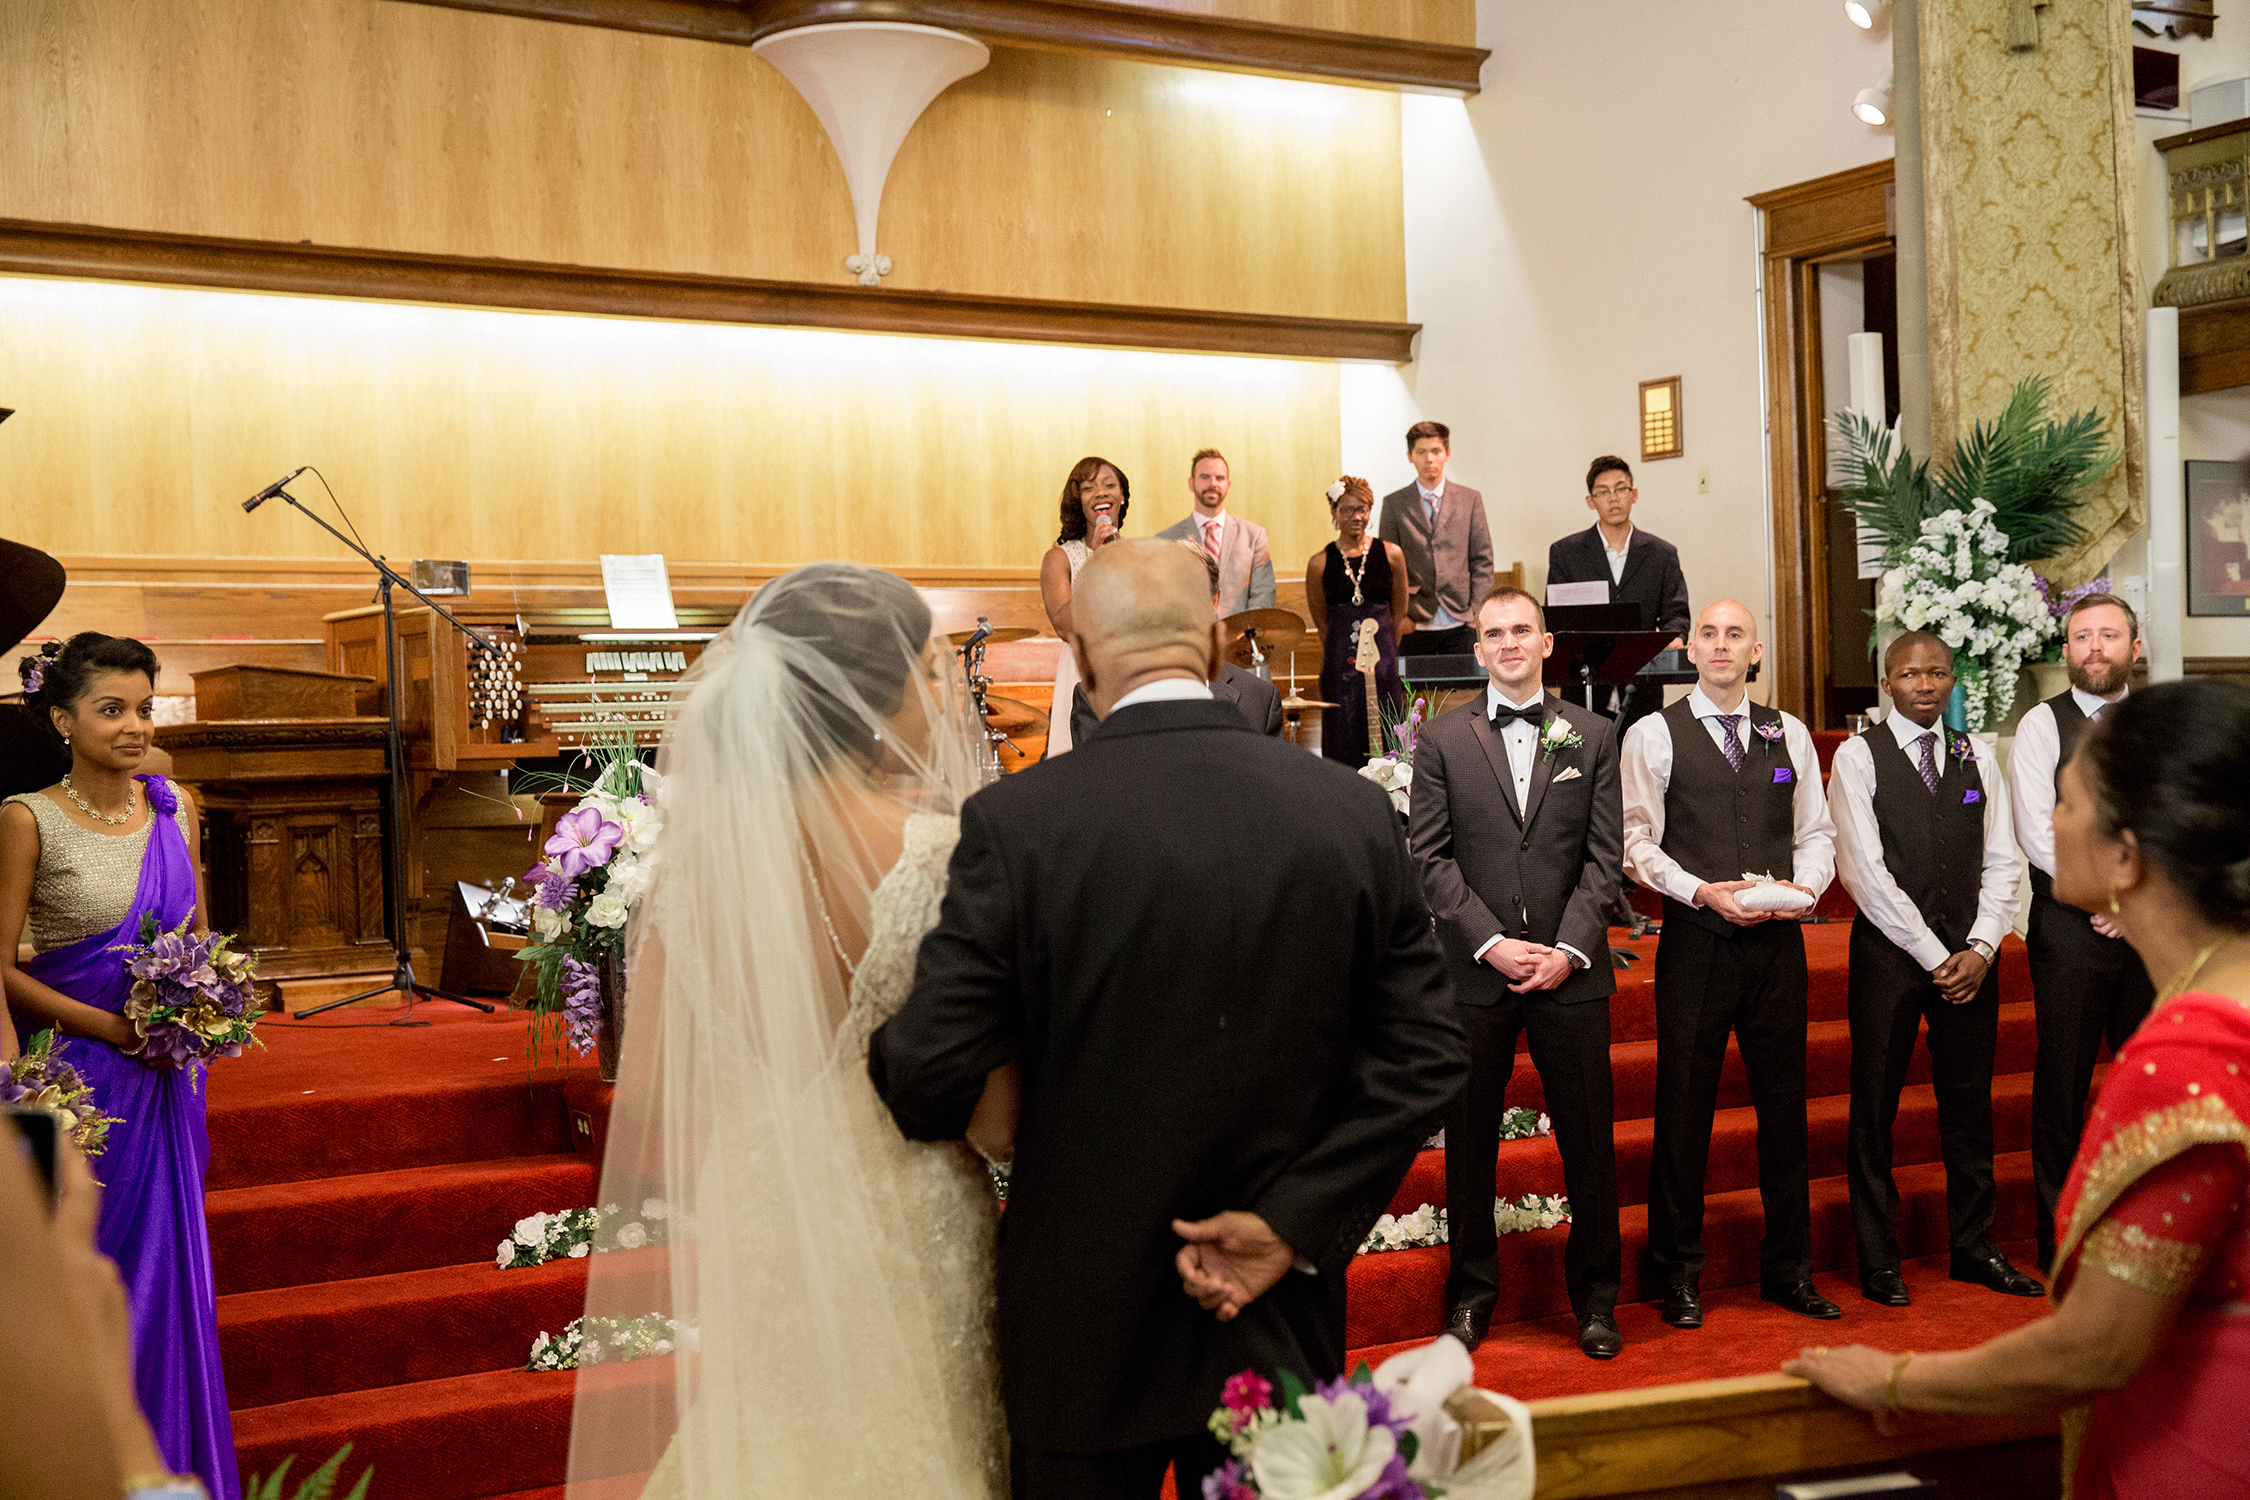 CalgaryWeddingPhotography_ParrishHousePhotos_JR03_09.jpg